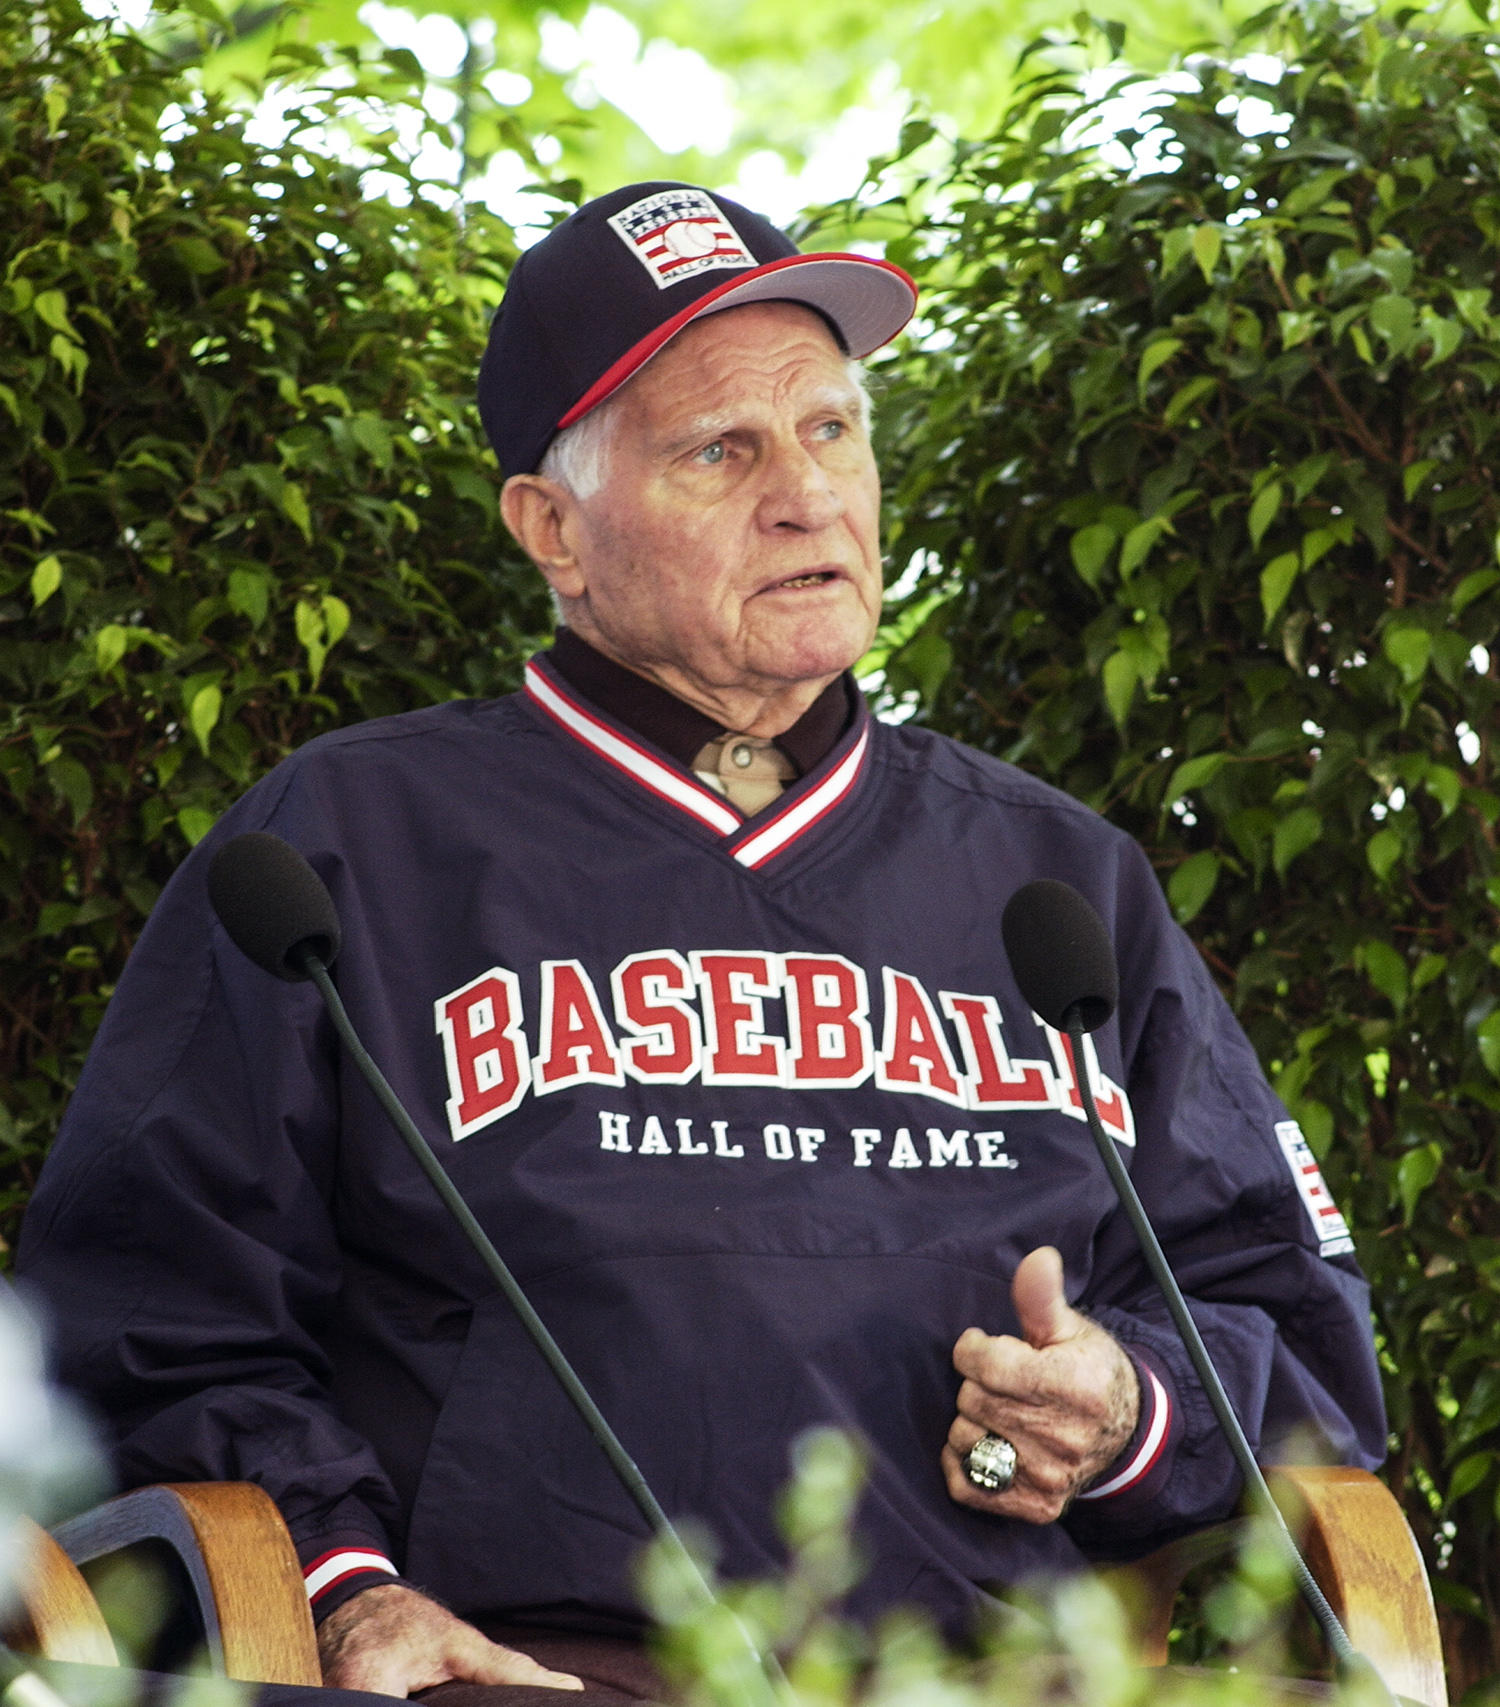 Hall of Famer Bobby Doerr, pictured above at the Baseball Hall of Fame in 2005. (By Photographer Milo Stewart Jr./National Baseball Hall of Fame and Museum)